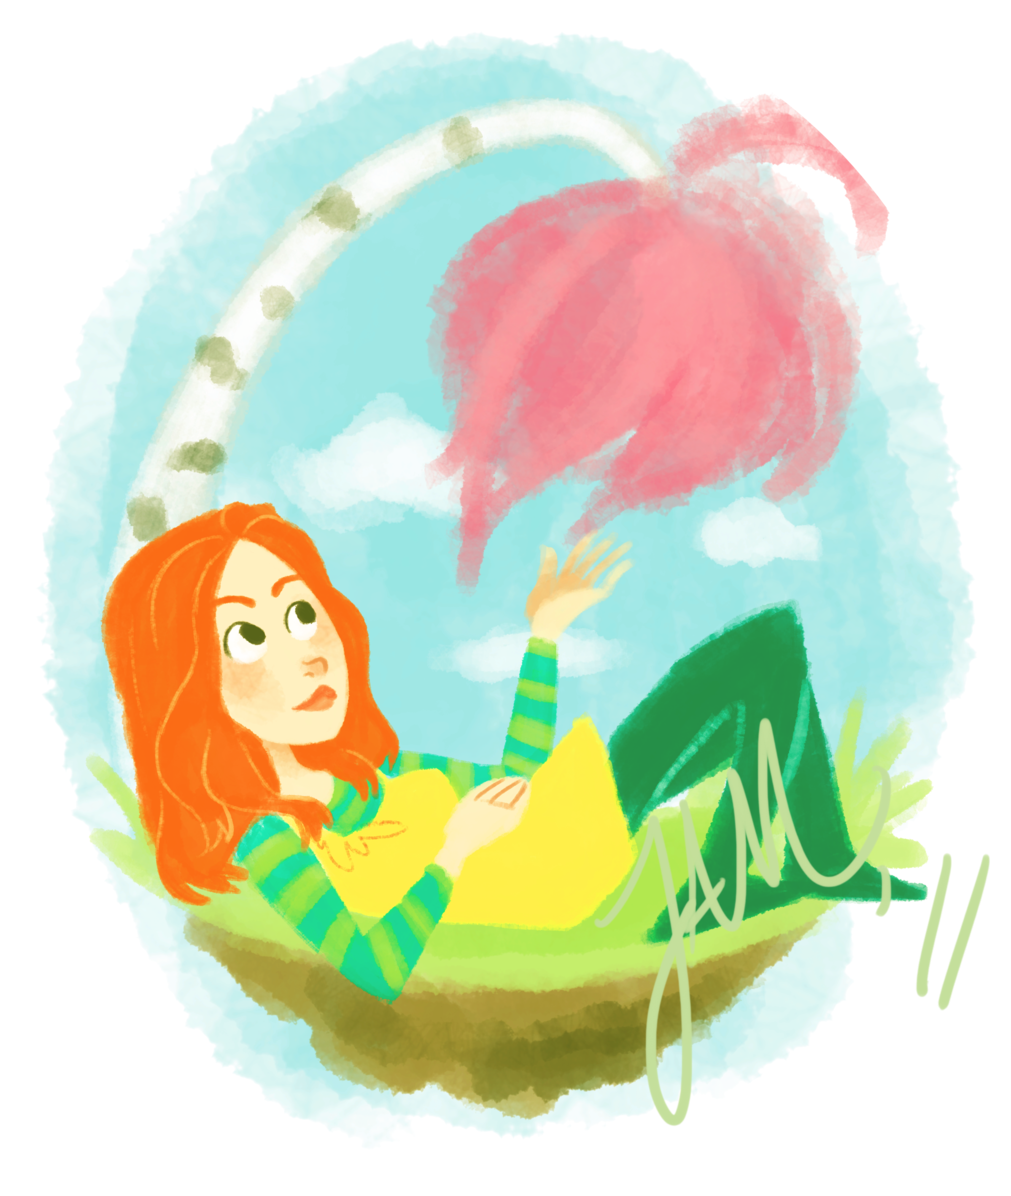 Download Audrey And The Truffula Tree The Lorax Png Image With No Background Pngkey Com